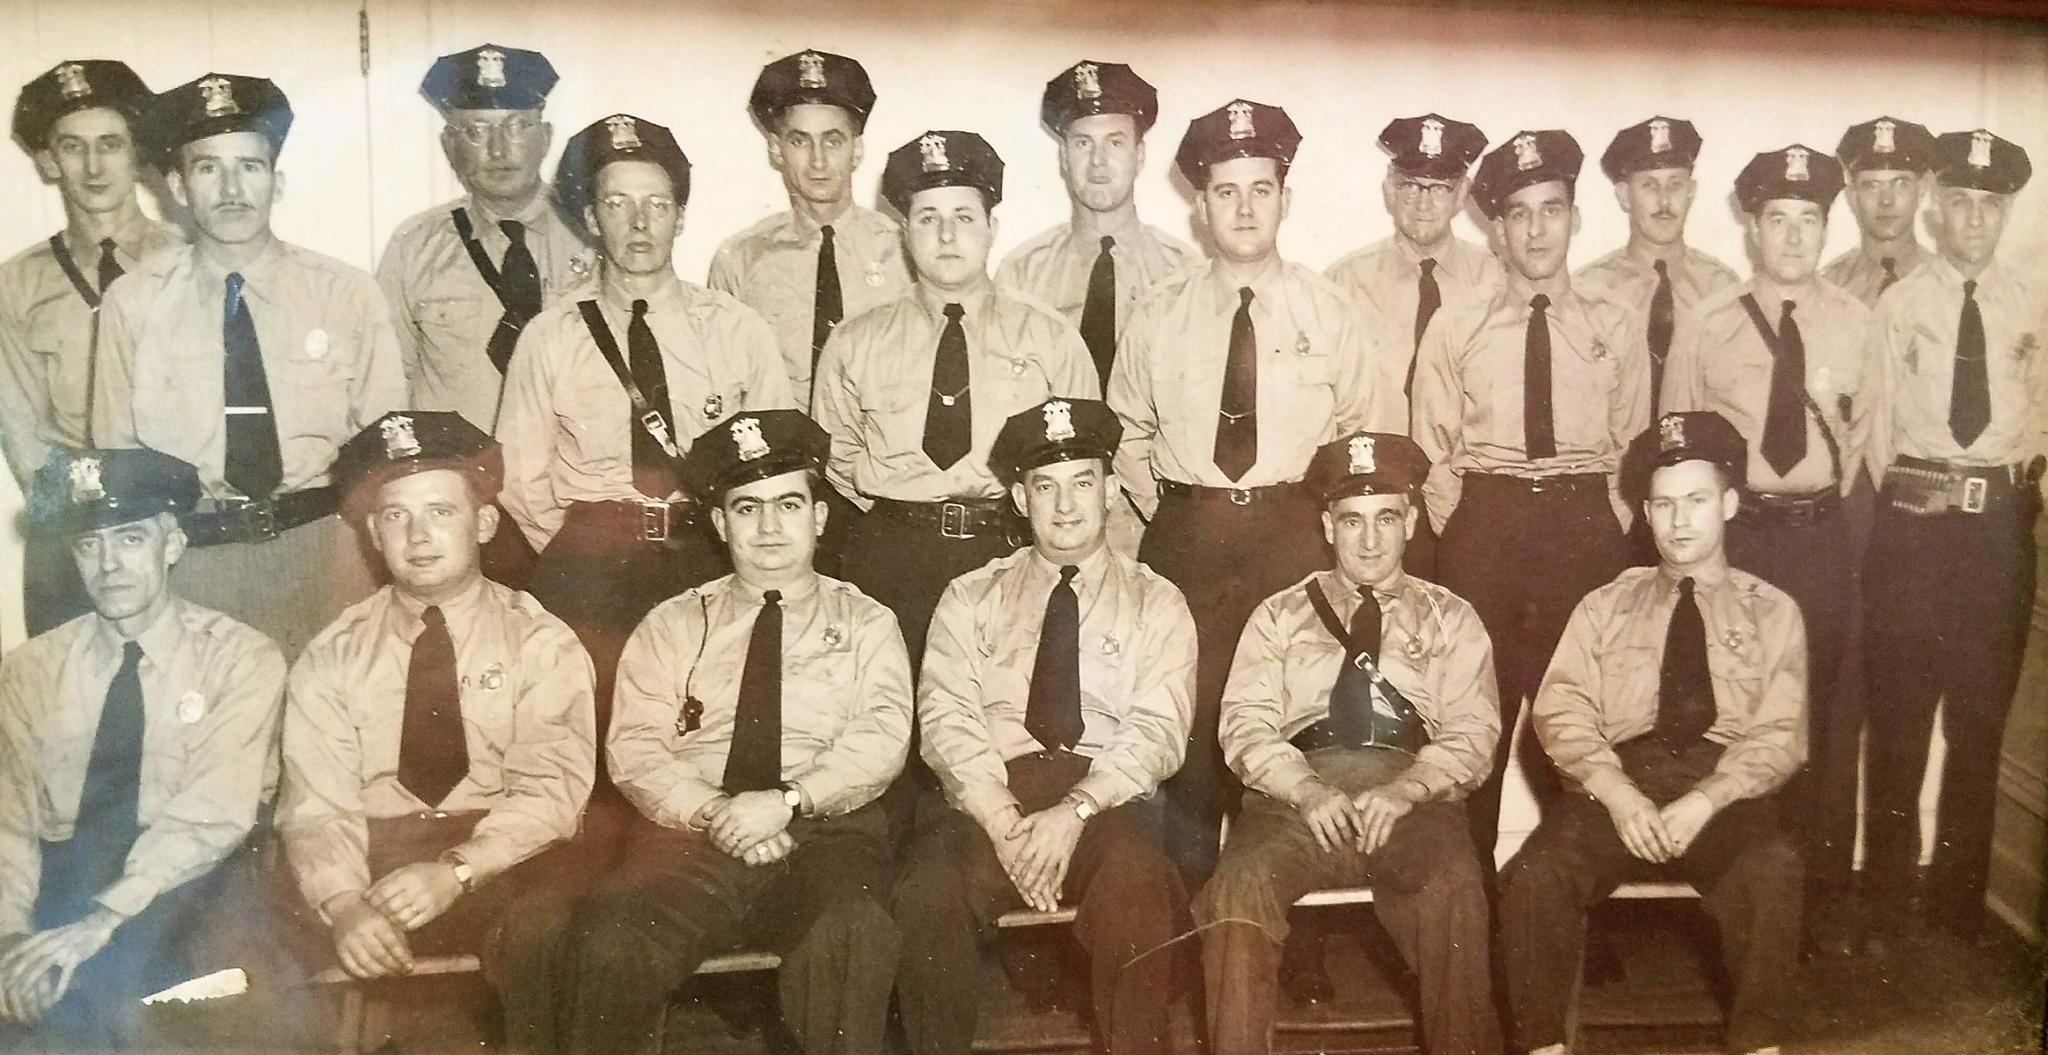 Photo provided by Westfield Police Department Officer Barry Meleen Pictured is circa 1960s photo of the Westfield policemen, both regular and auxiliary. Only one is identified, that of Robert Peterson (back row, right end with ammunition belt), Meleen's grandfather, who was police chief for many years until his retirement in 1968.